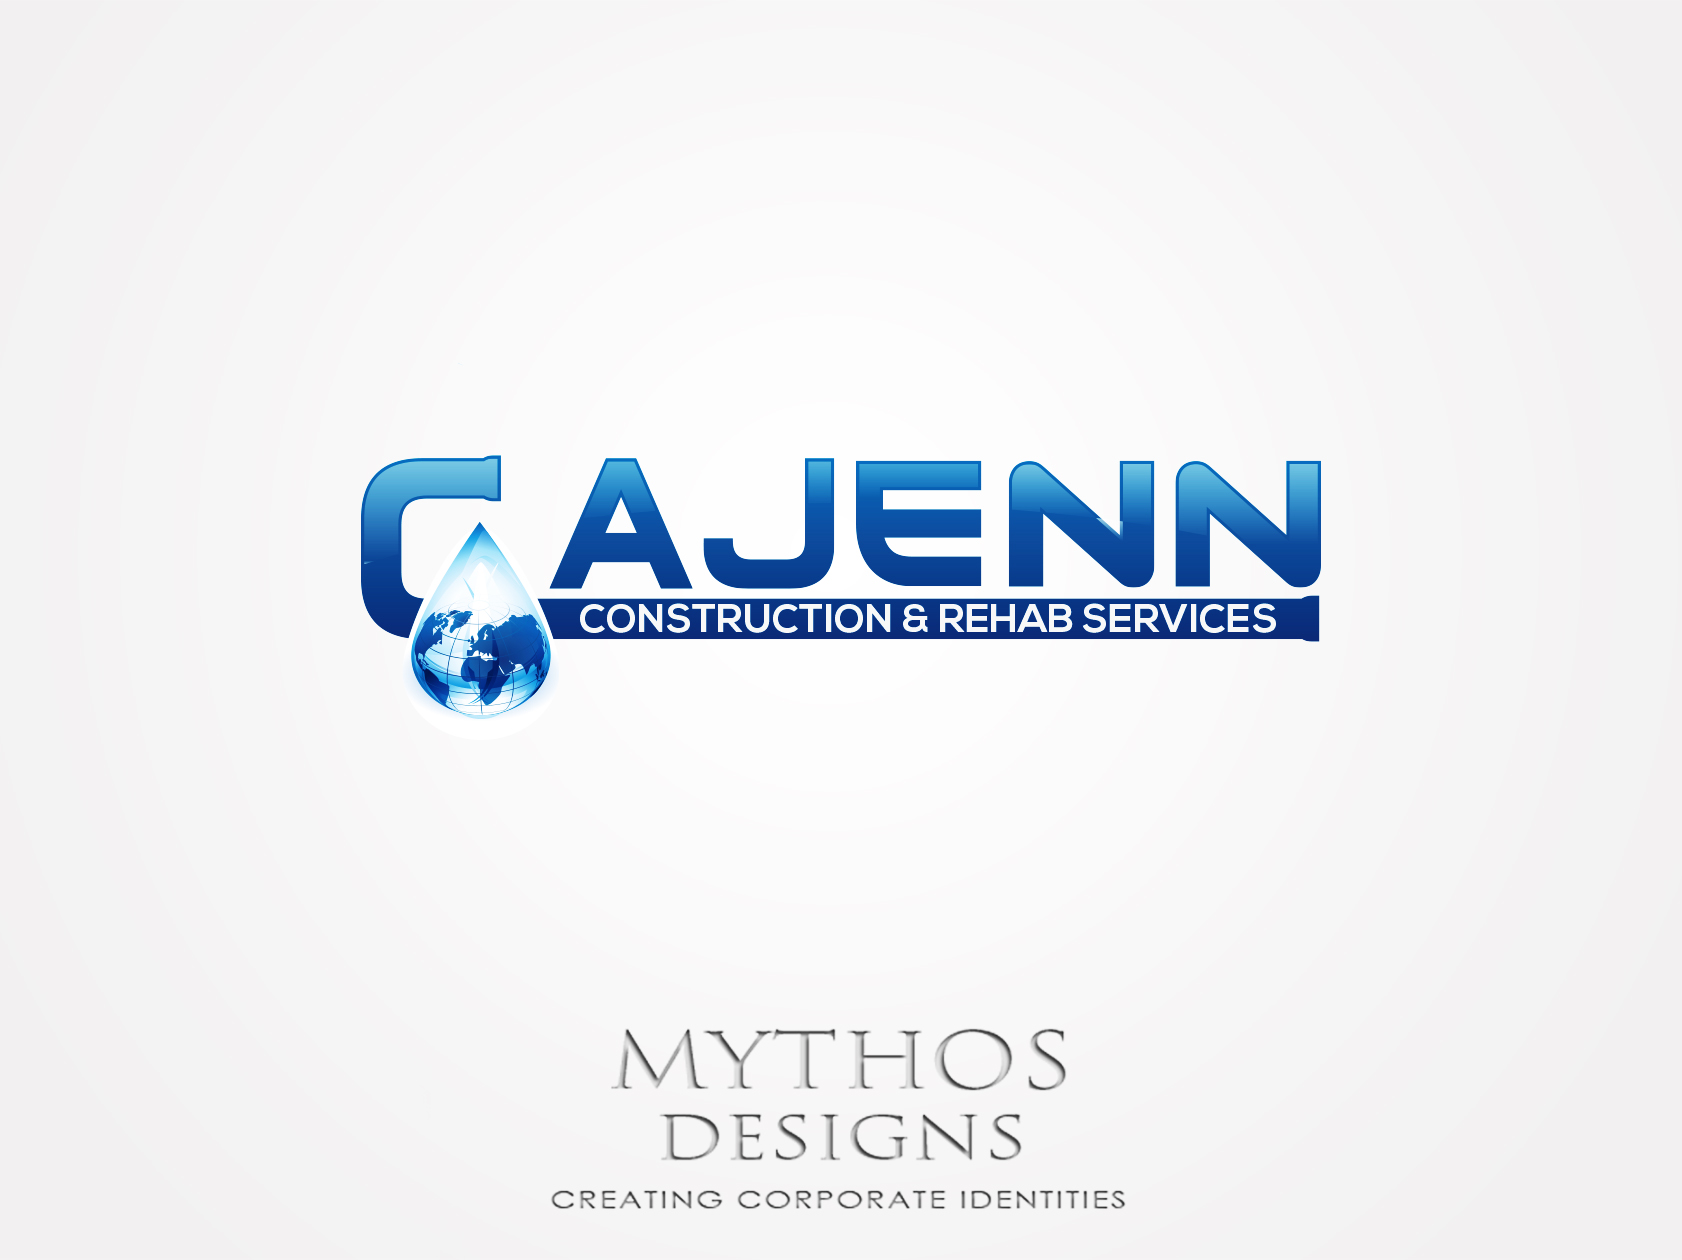 Logo Design by Mythos Designs - Entry No. 314 in the Logo Design Contest New Logo Design for CaJenn Construction & Rehab Services.